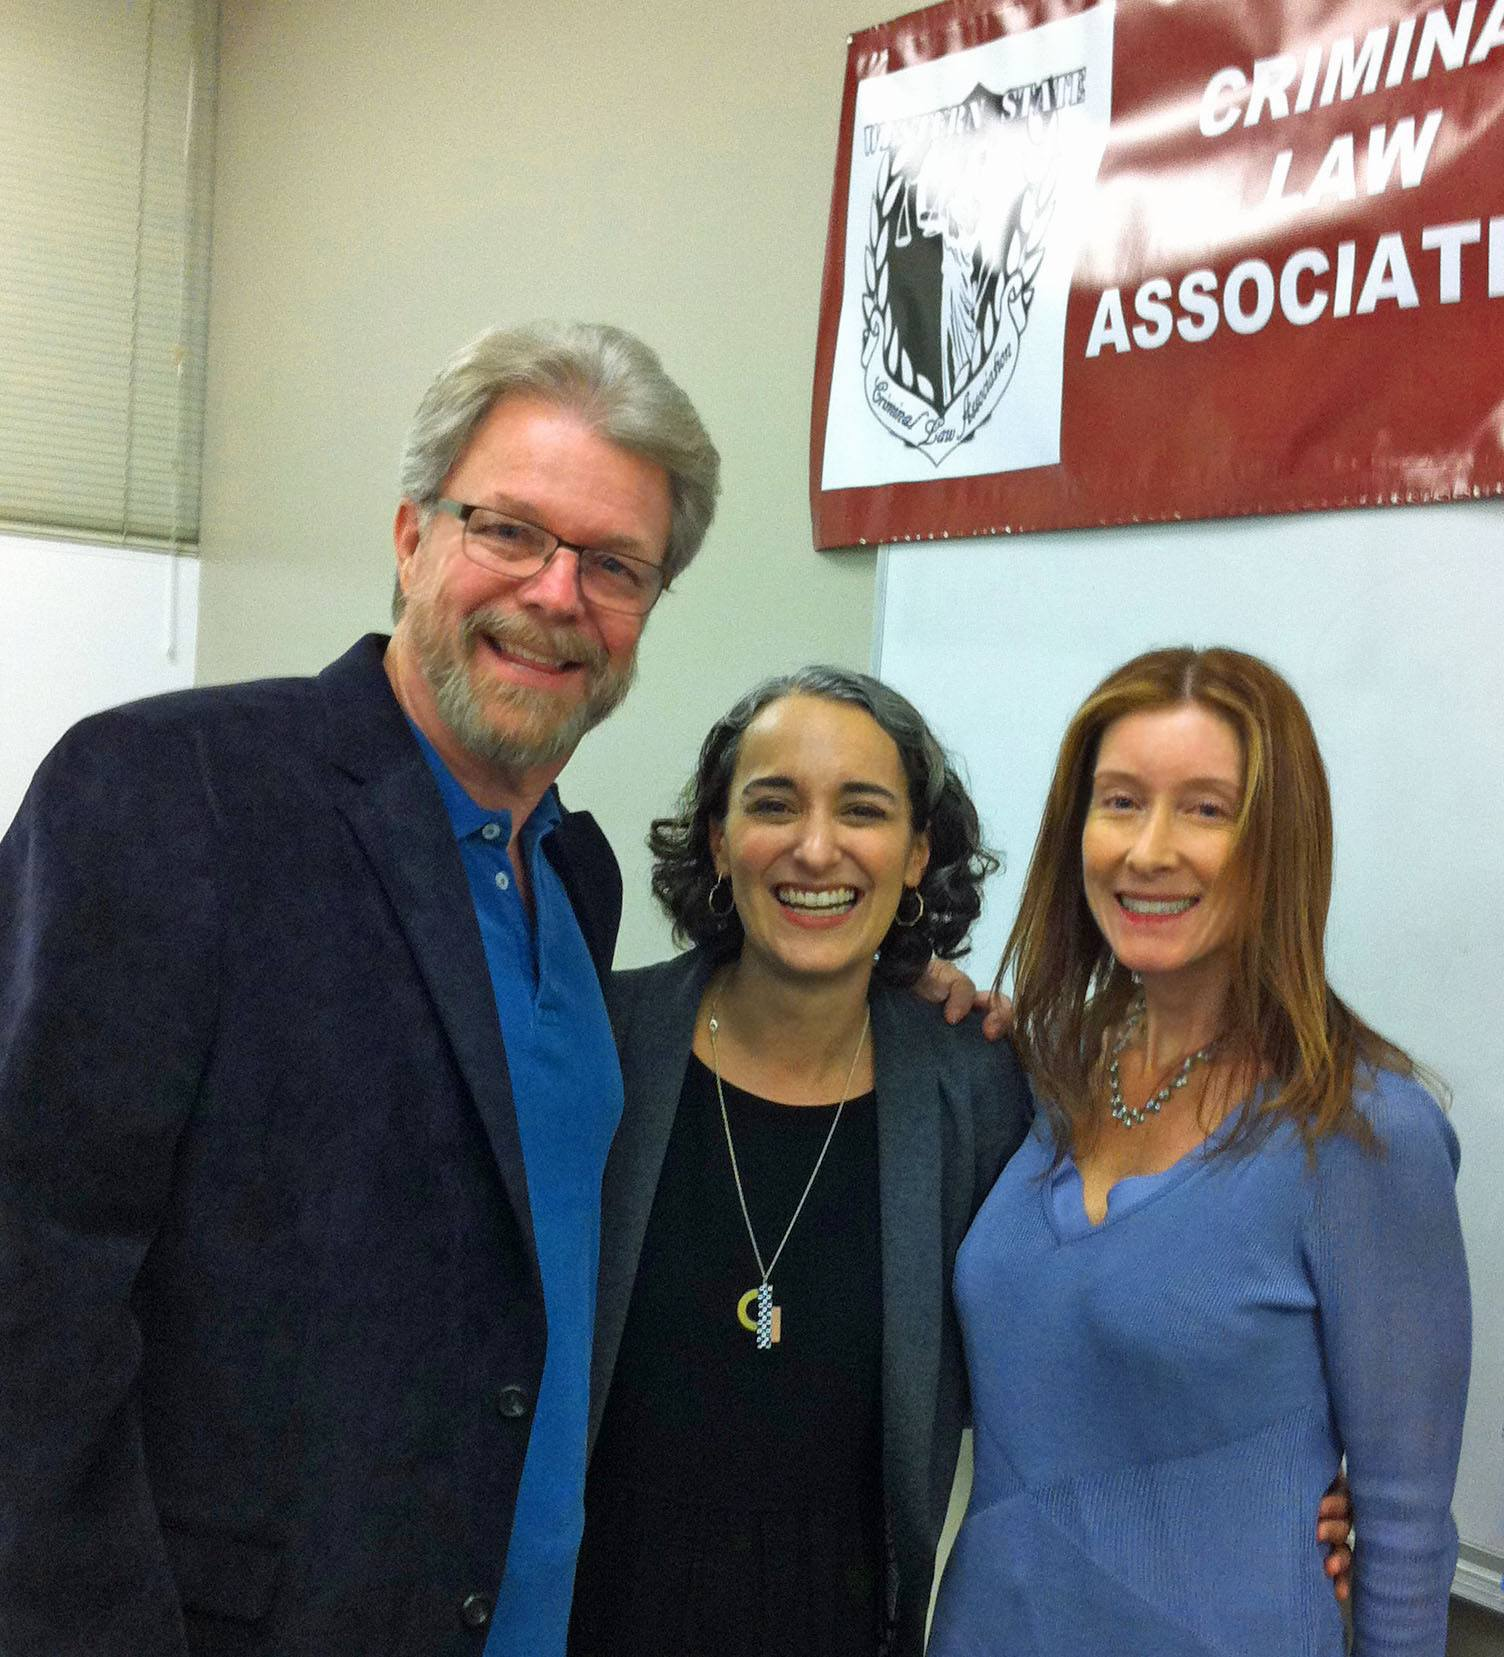 Three people with criminal law association